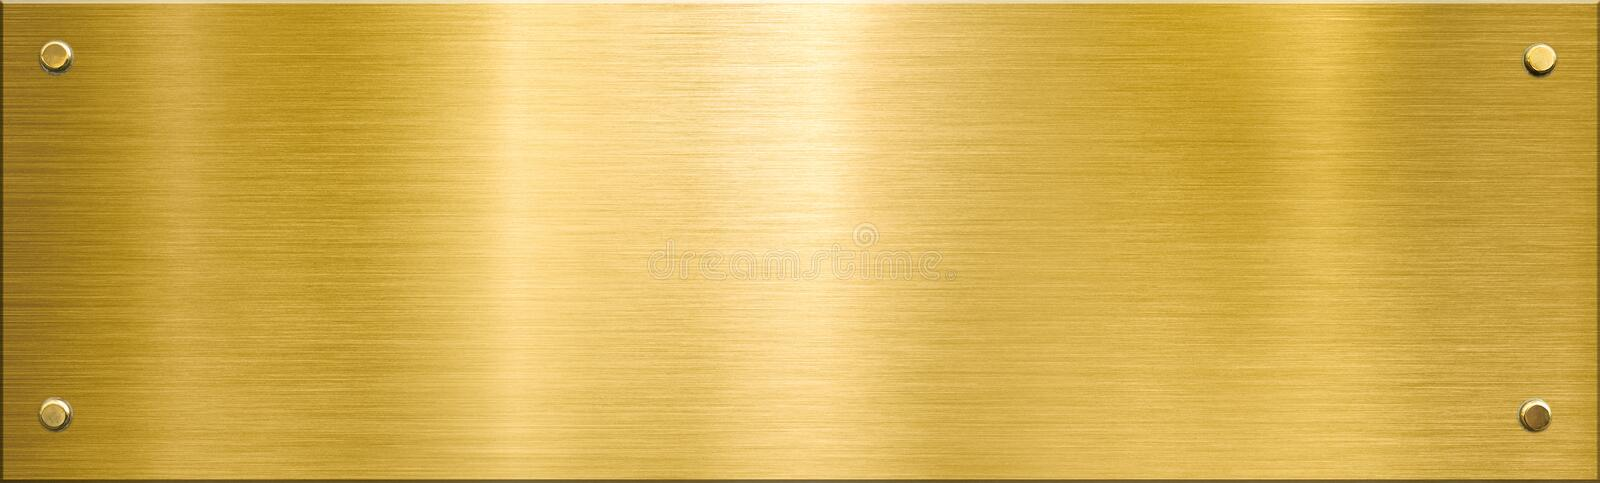 Gold metal plaque or nameboard with rivets background stock photo